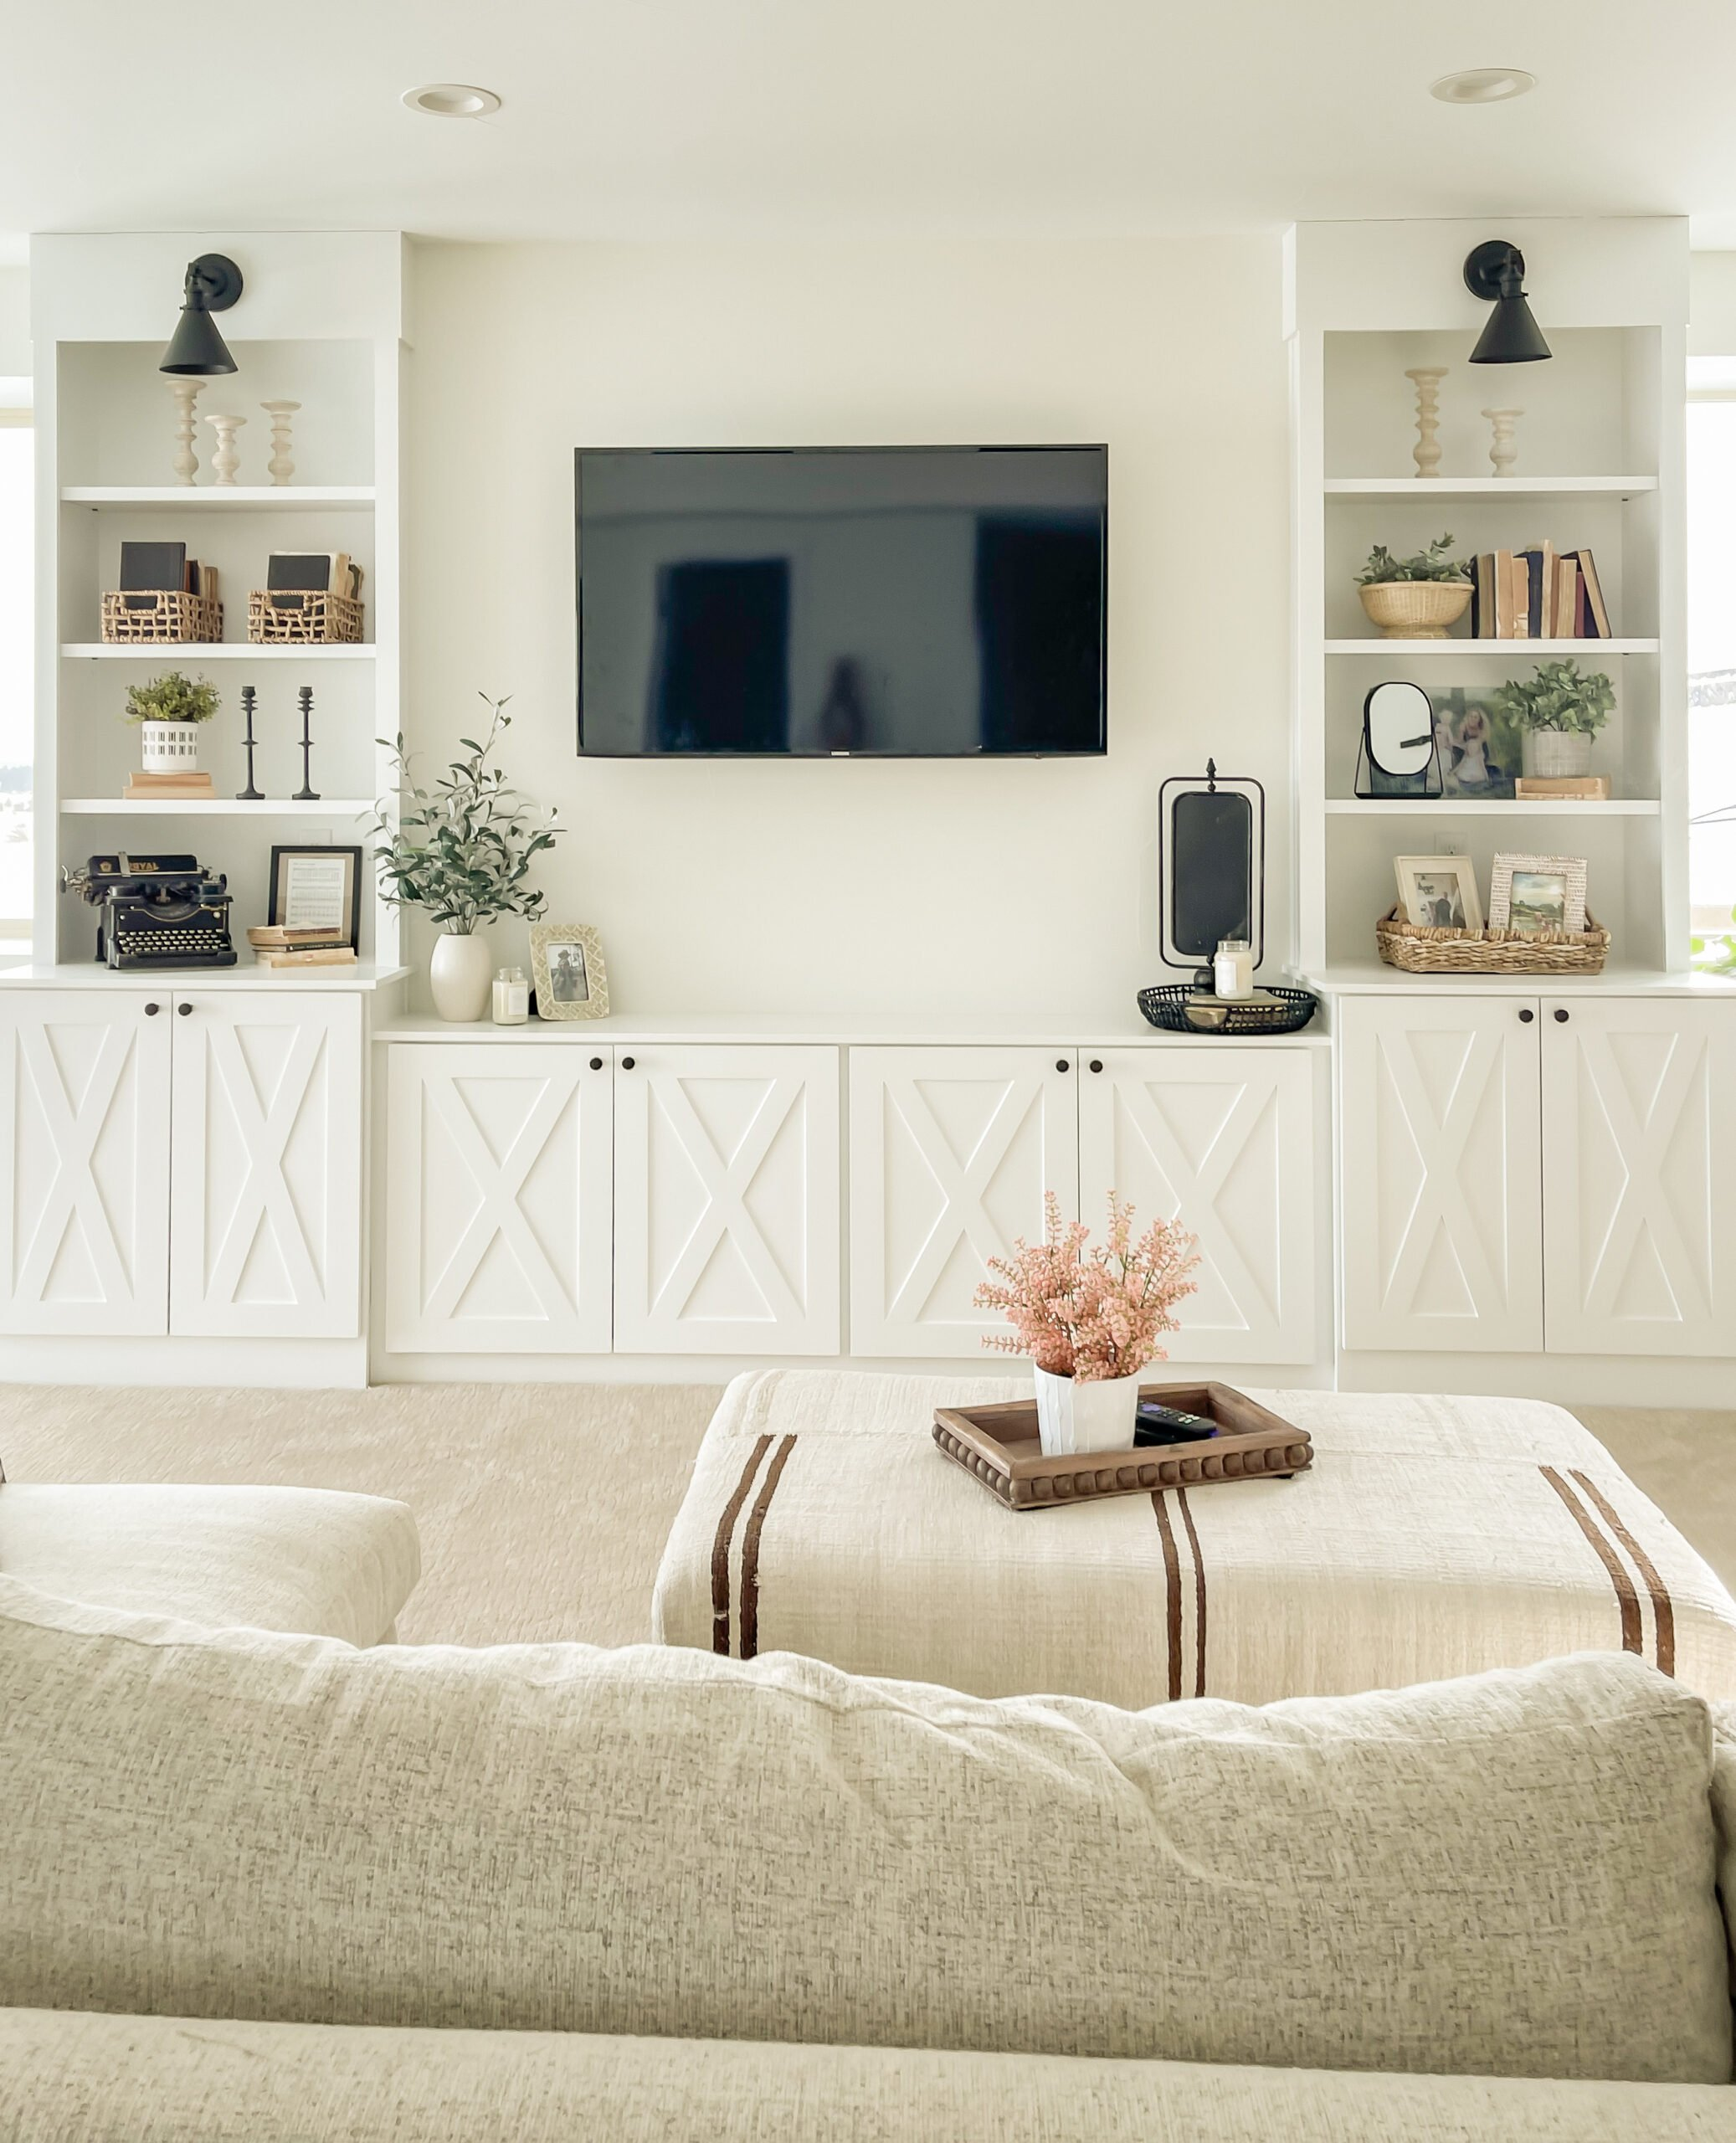 Styling the Media Wall Built-In. Shelf styling decor ideas!